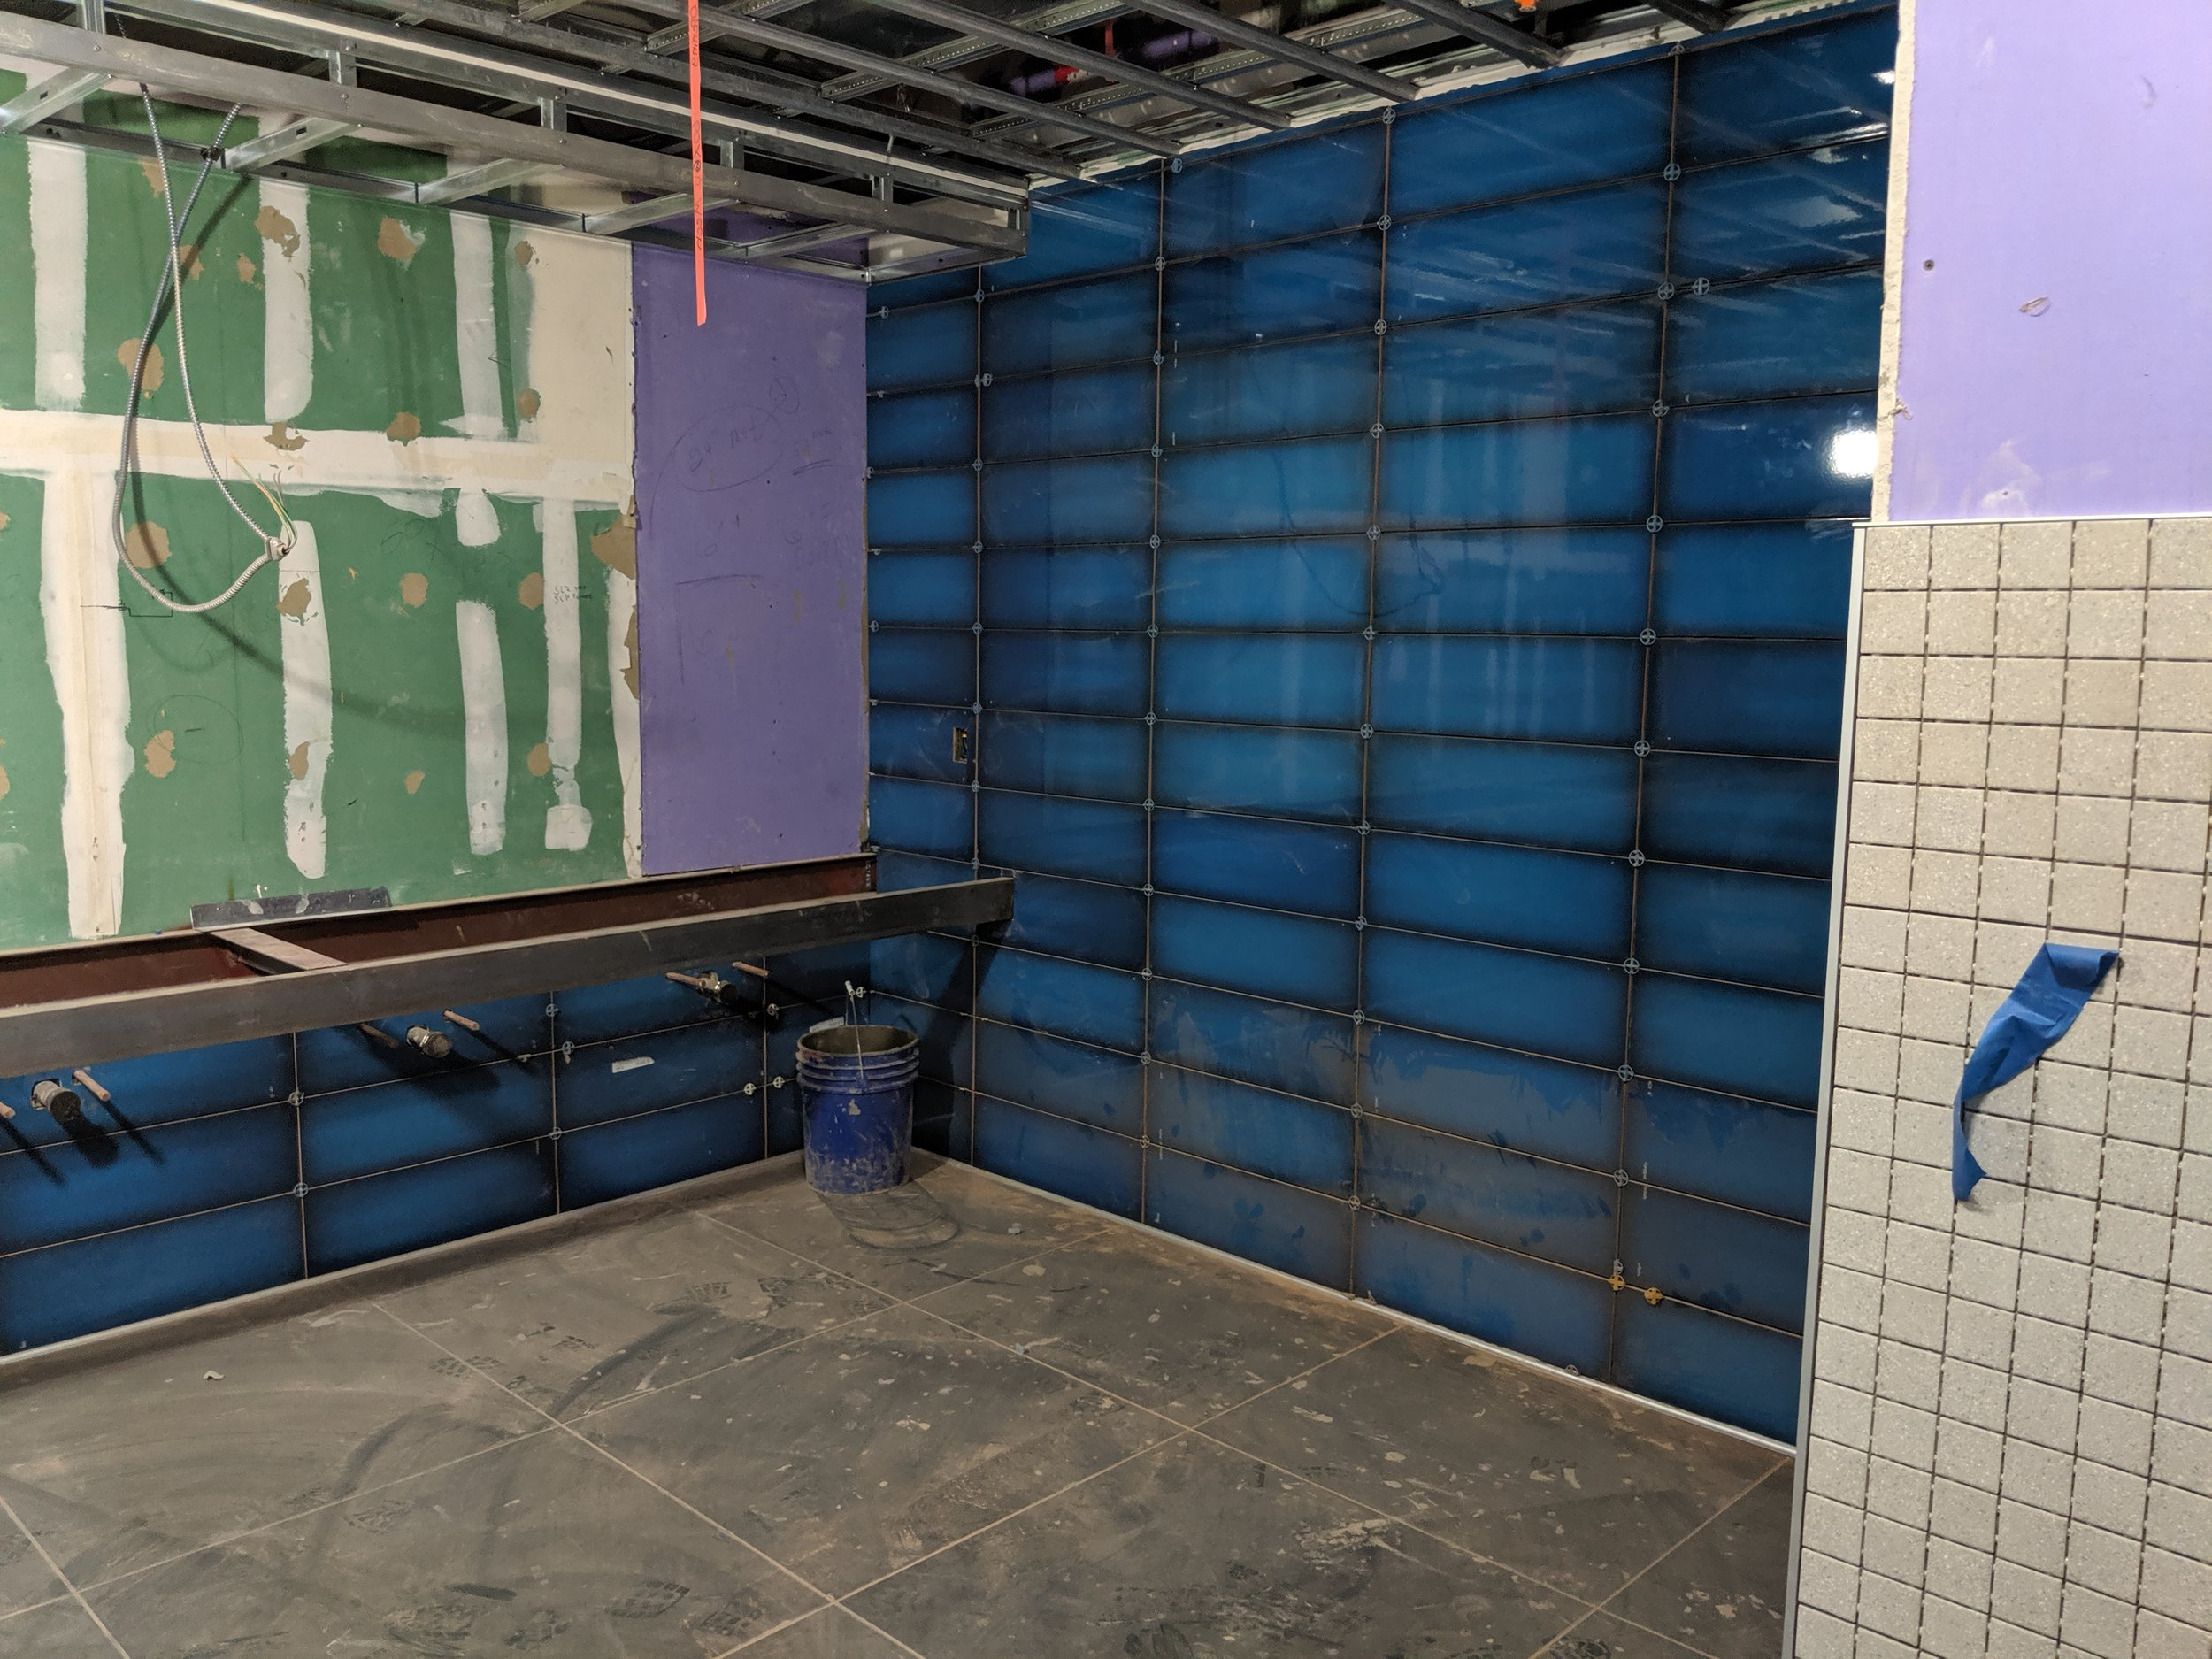 June 2019  - Our restrooms are getting a full remodel, with new fixtures, flooring, and tiled walls like the rich blue color you see here. The men's restroom entrance will be relocated to behind concessions to alleviate traffic near the women's restroom entrance.